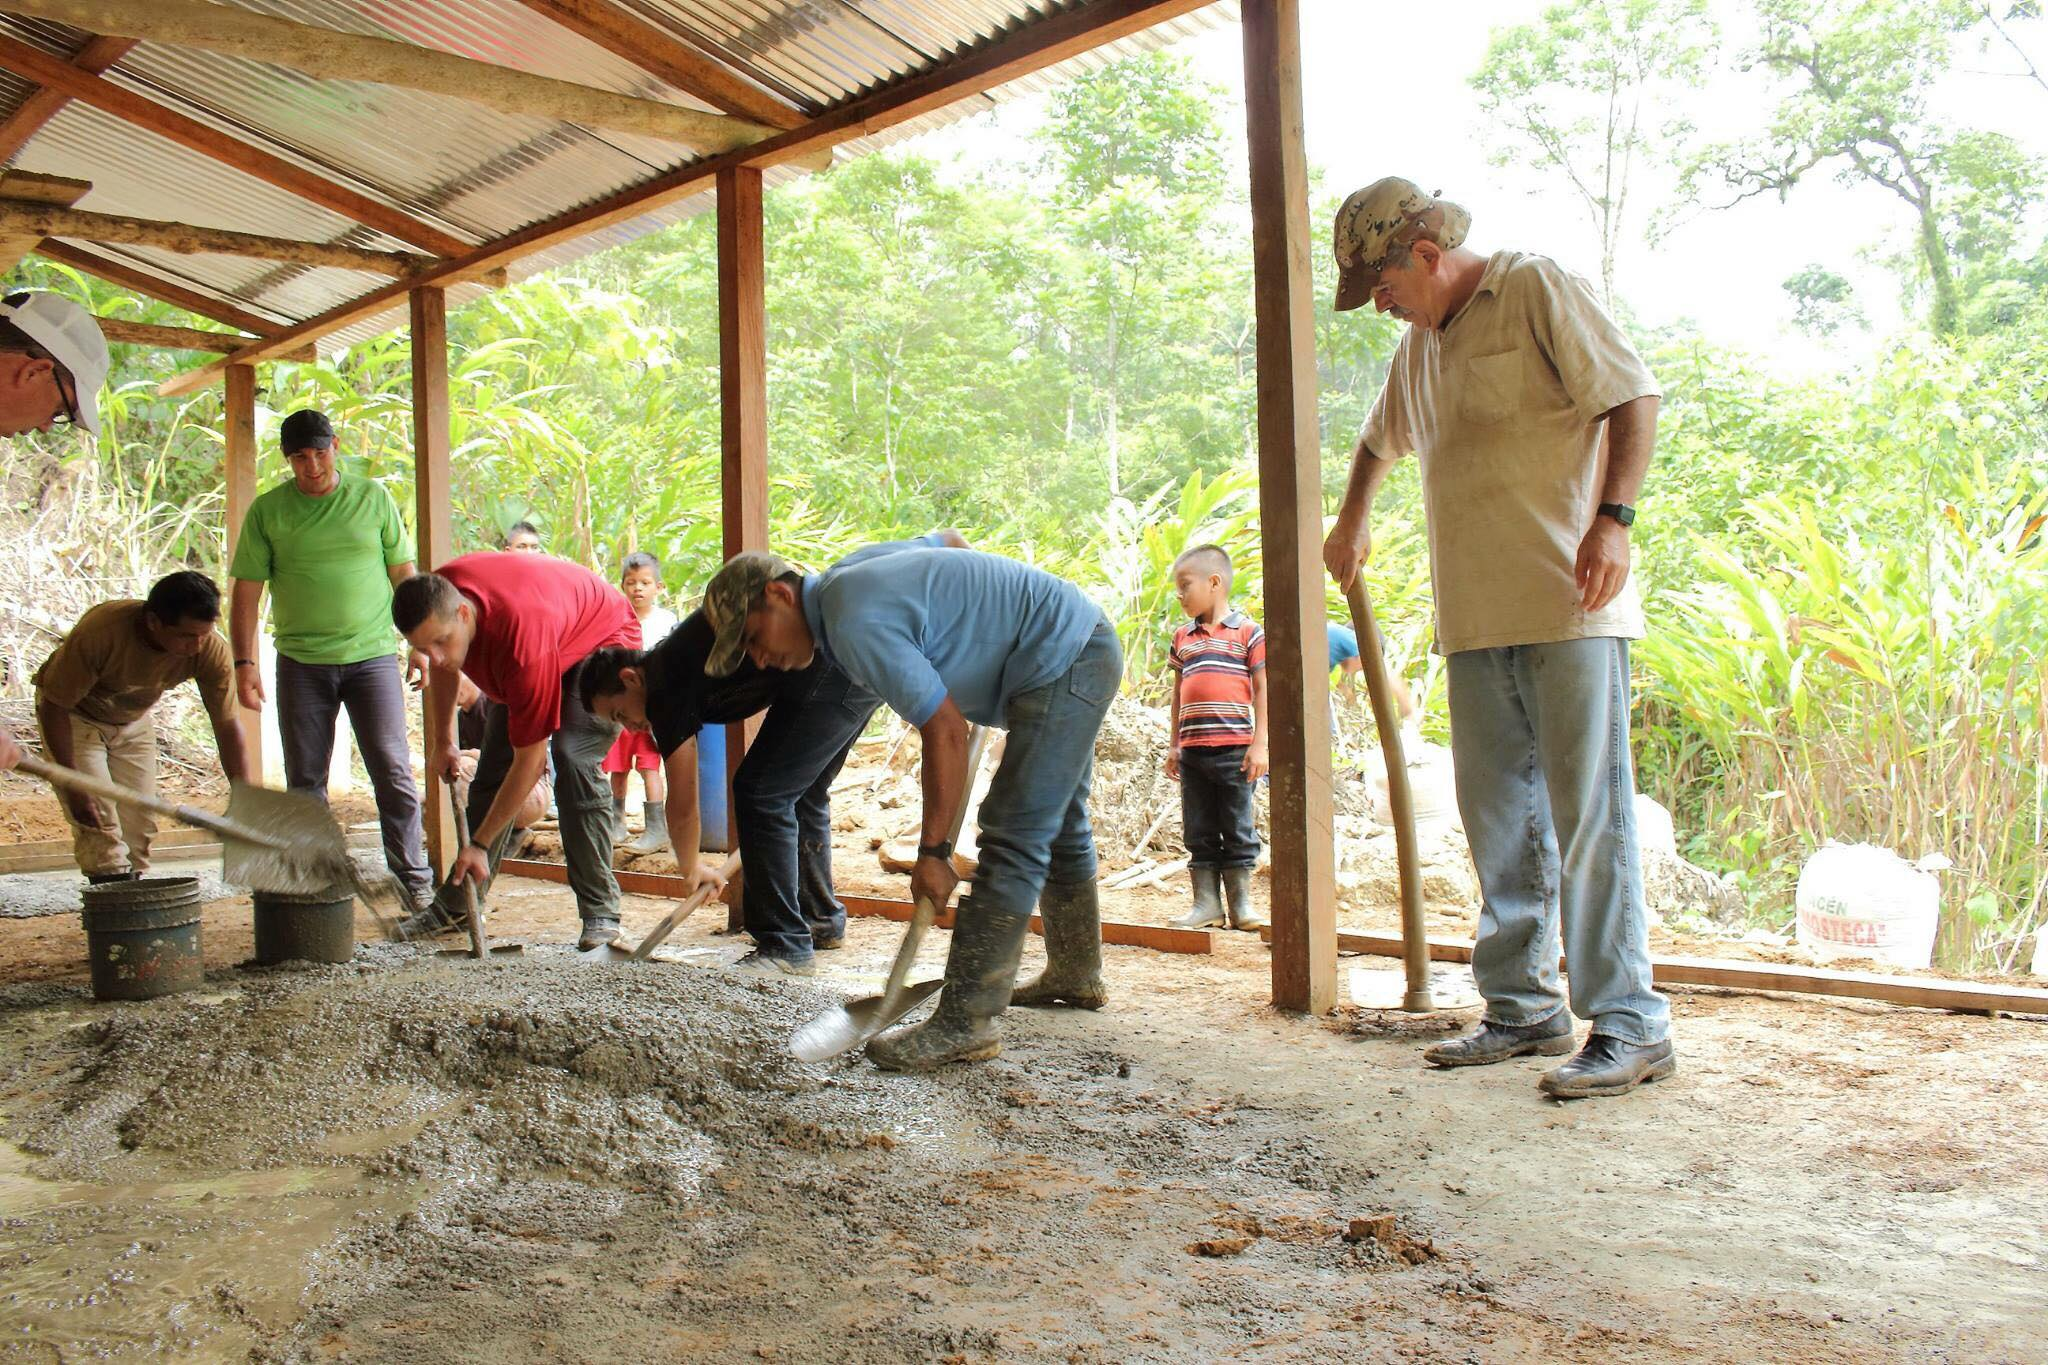 The volunteers along with members of the village hard at work, to build the school's foundation.